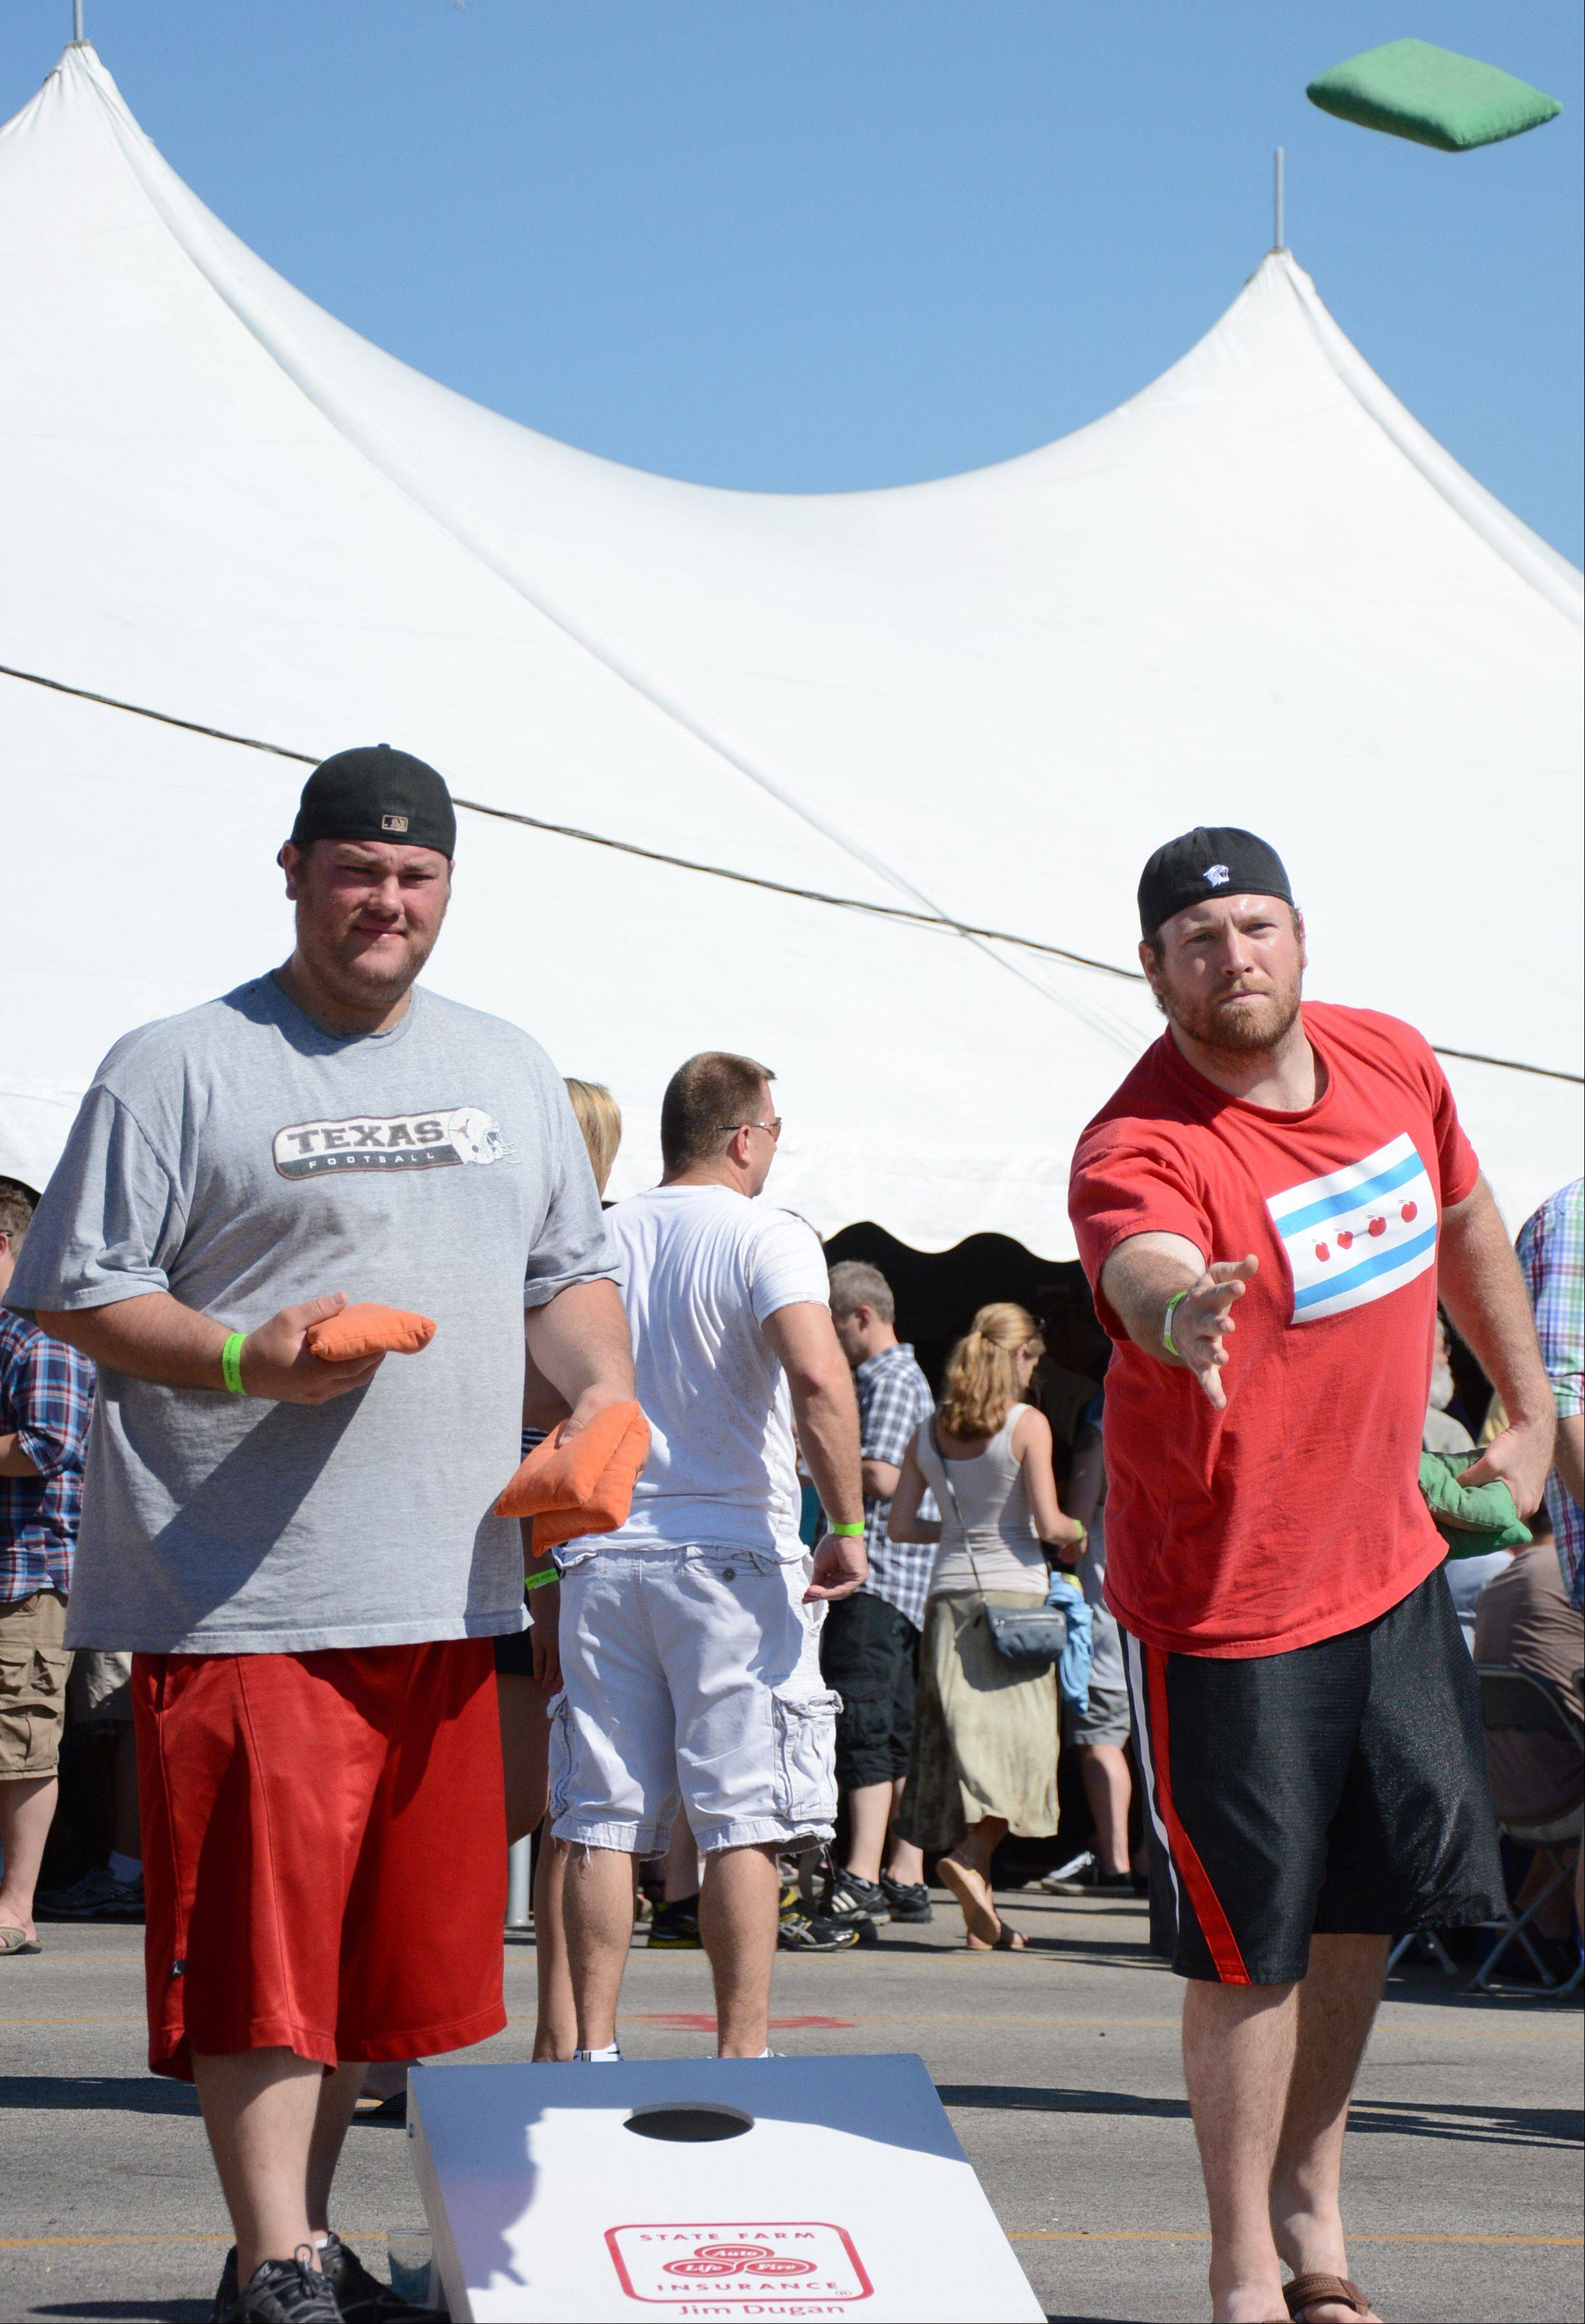 Mark Barkulis, left, and Sean Ryder, both of Chicago, play bags at the Barrington Brew Fest on Saturday.